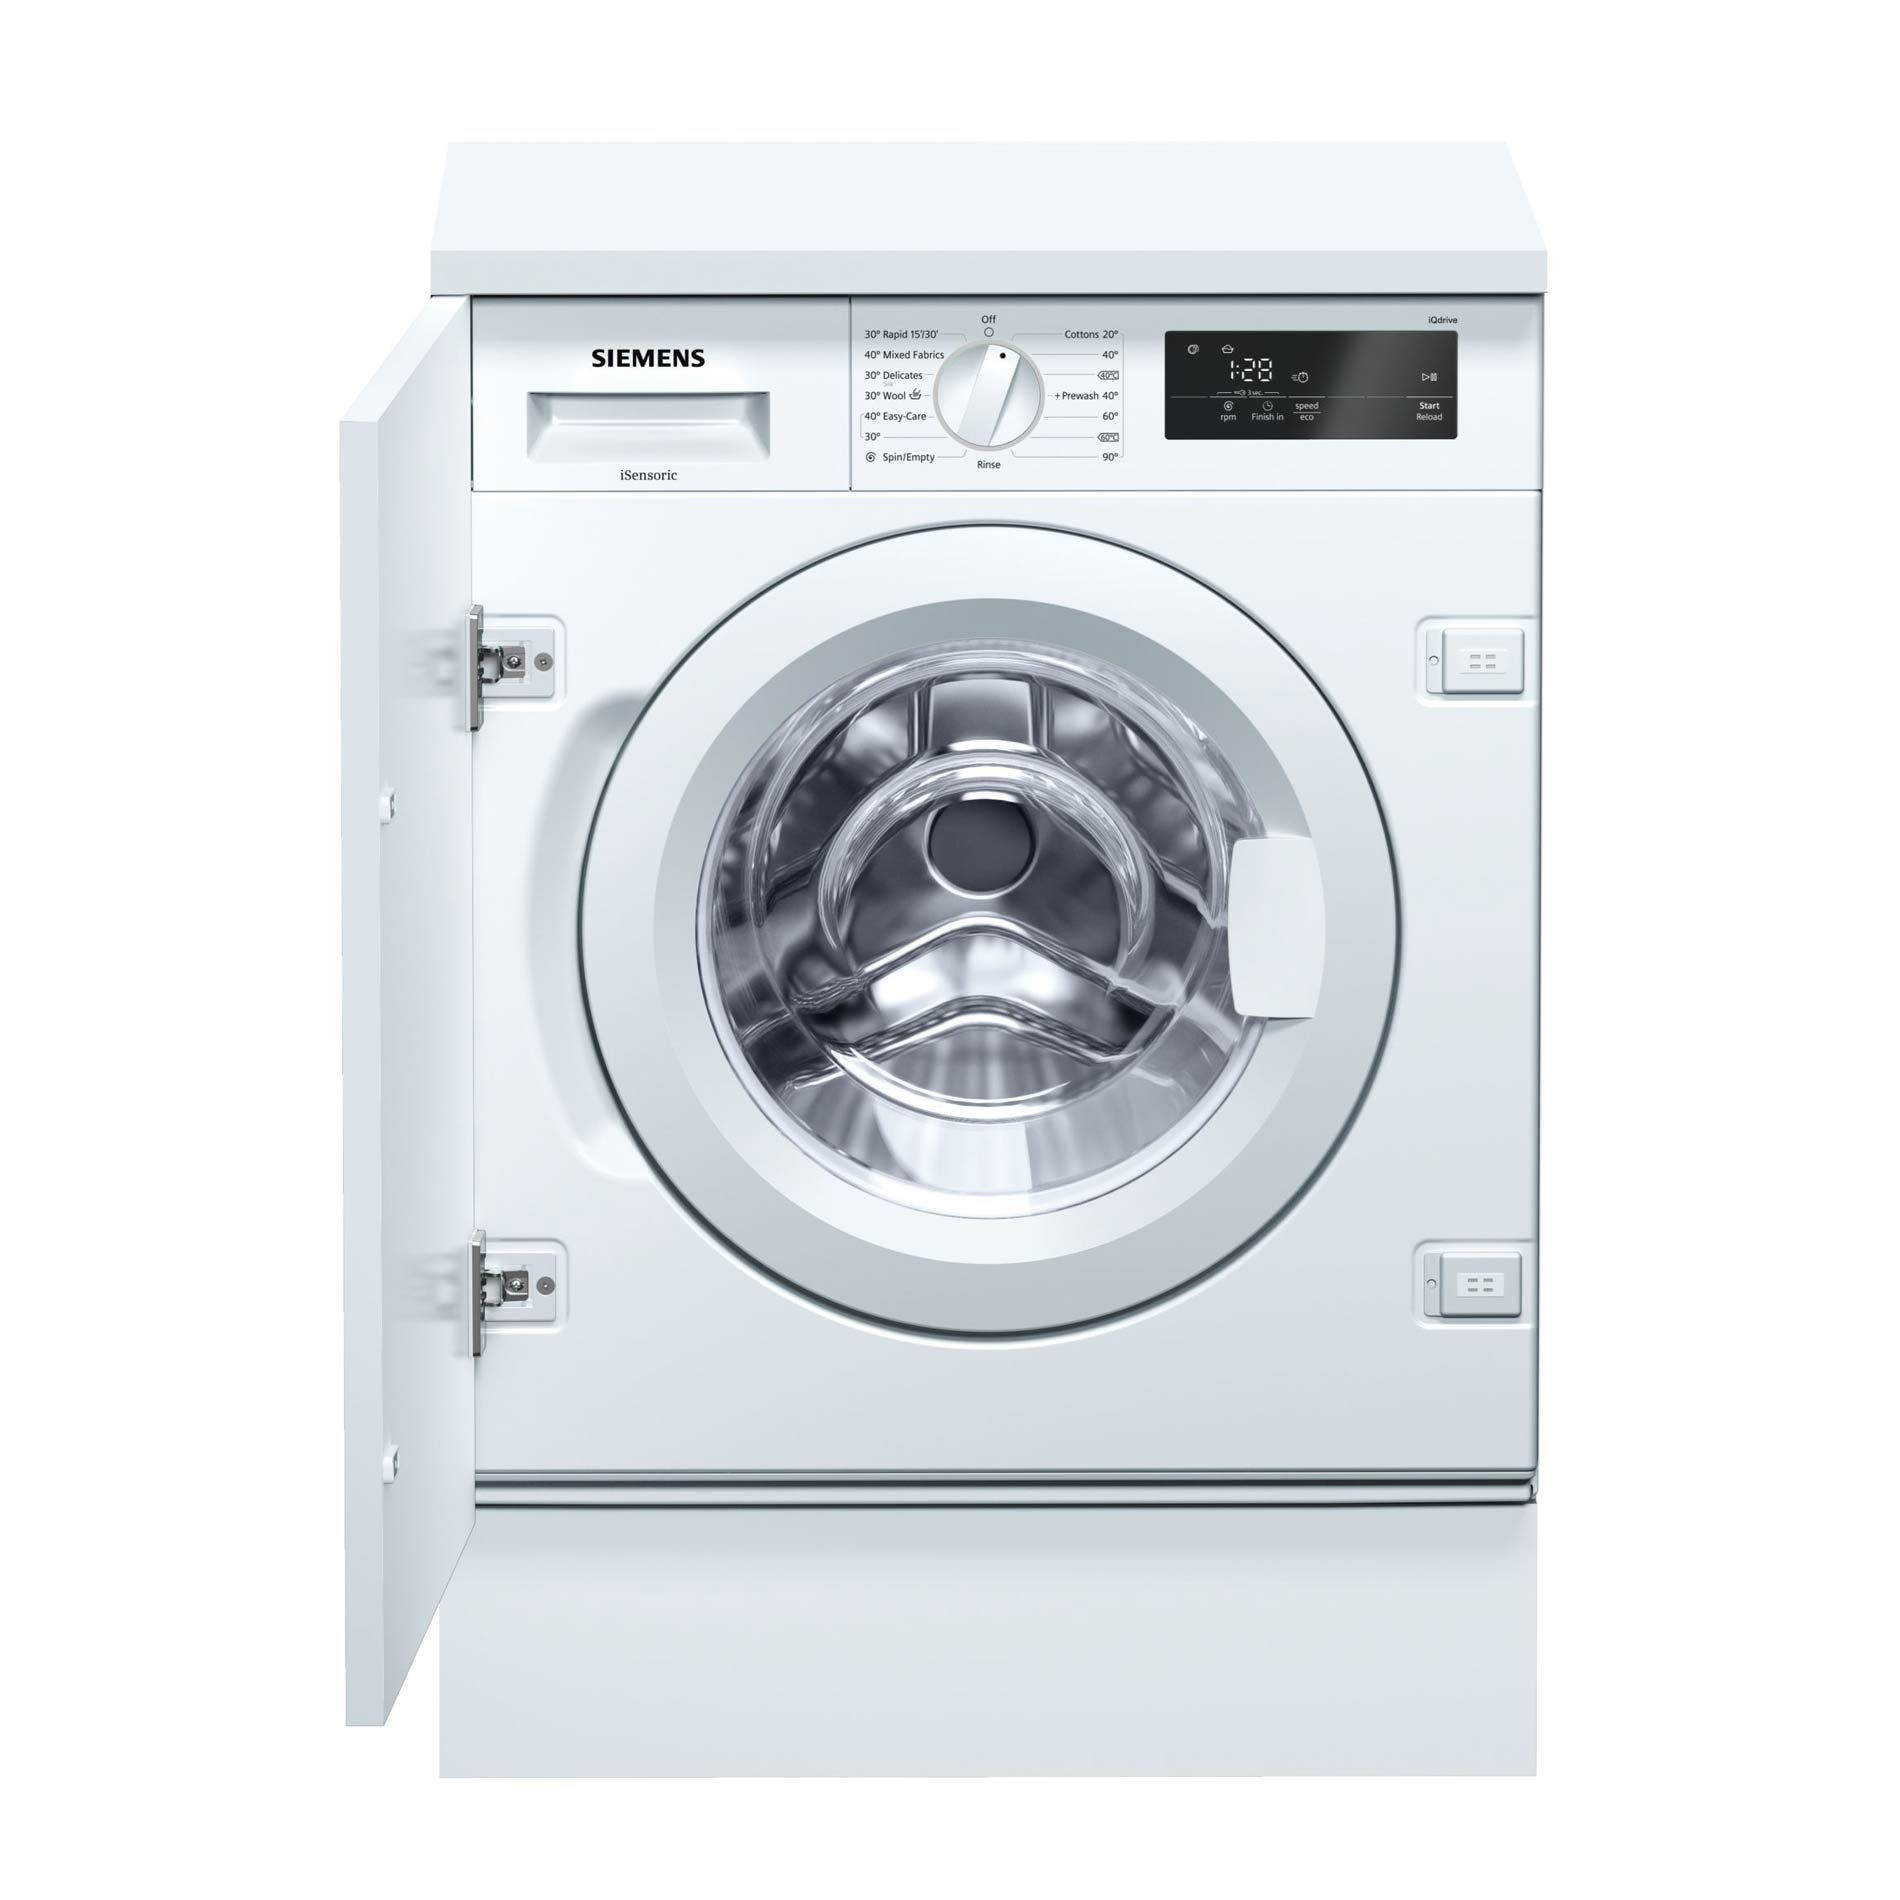 Picture of WI14W300GB Fully Integrated Automatic Washing Machine